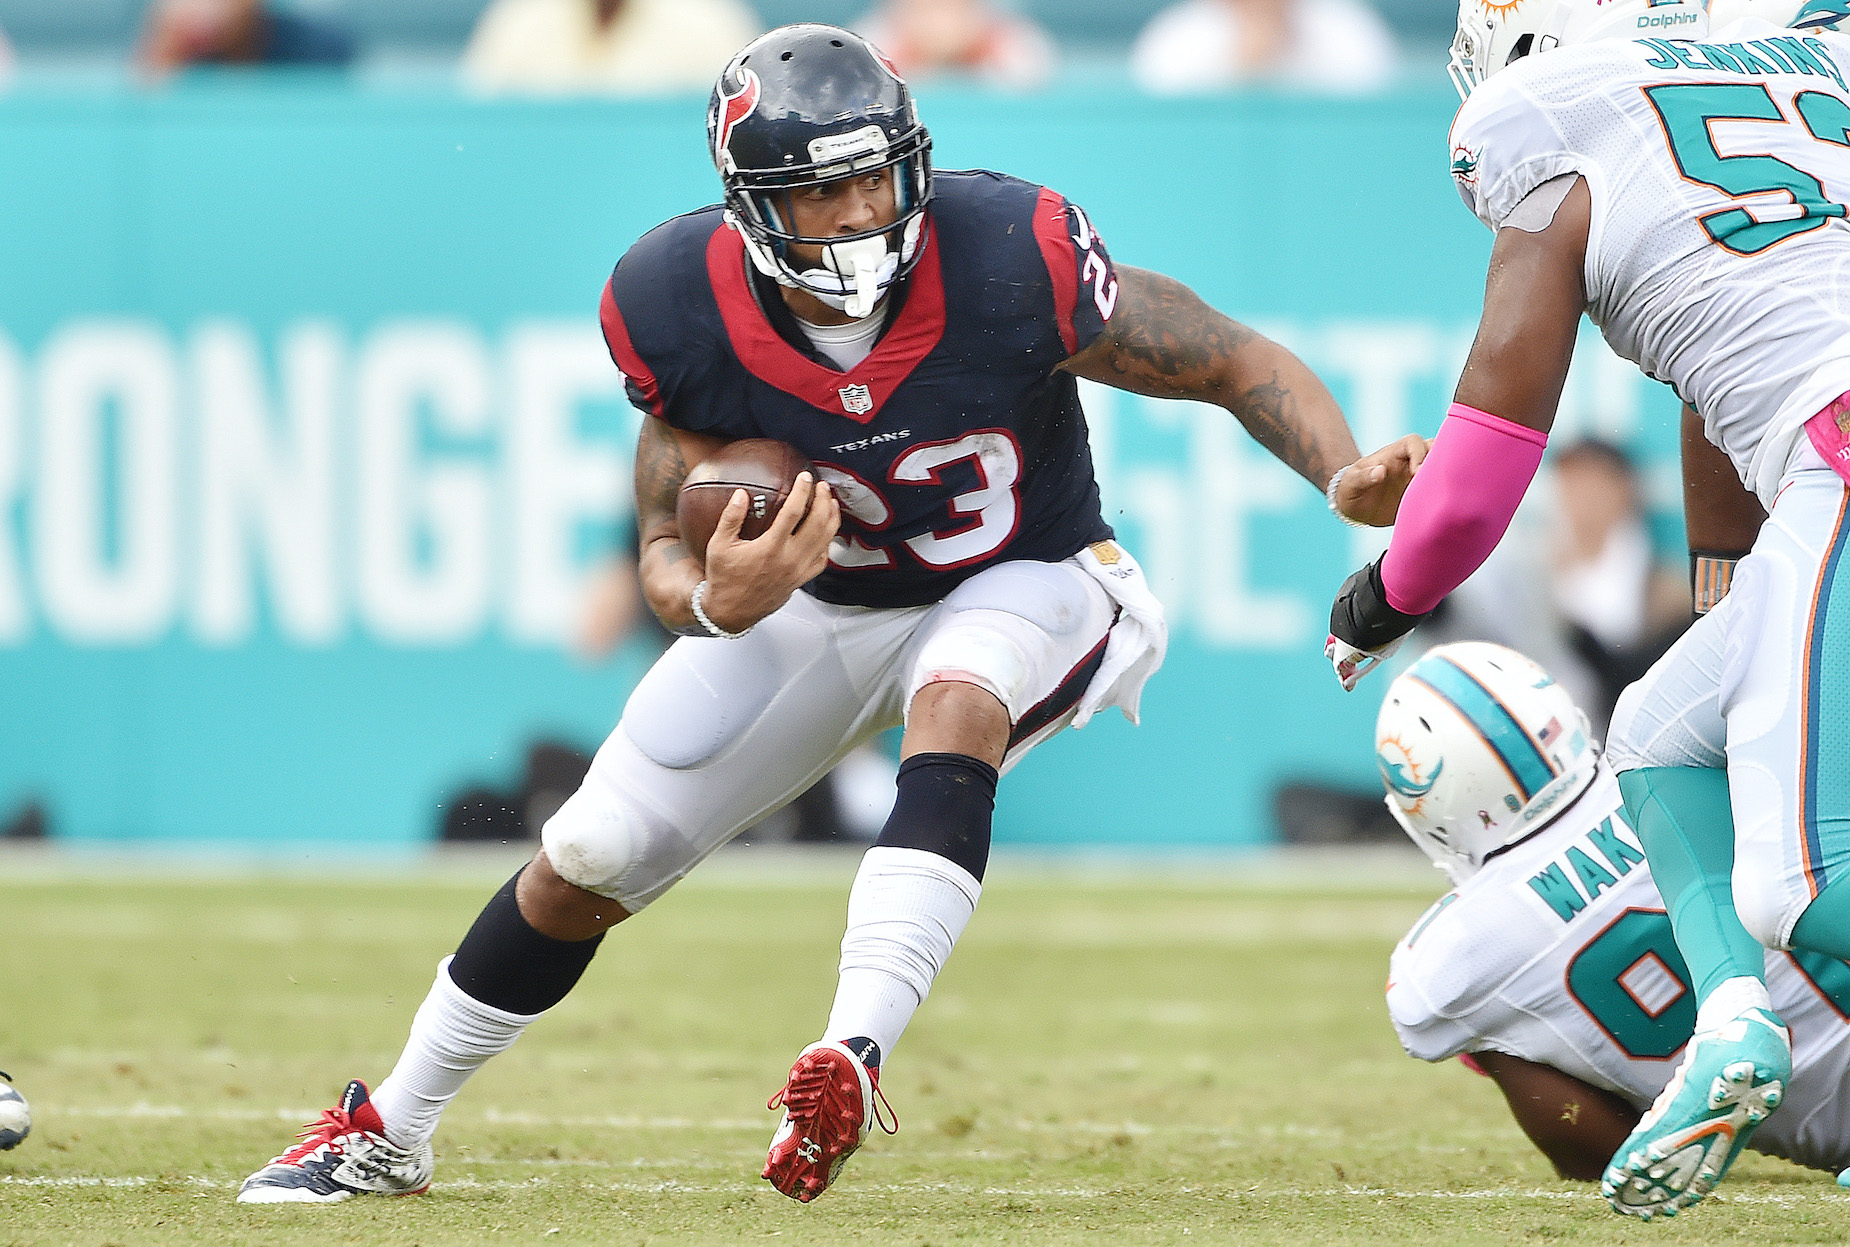 Arian Foster Made Almost $40 Million in the NFL, but He Wouldn't Play Football Again if He Had a Second Chance at Life